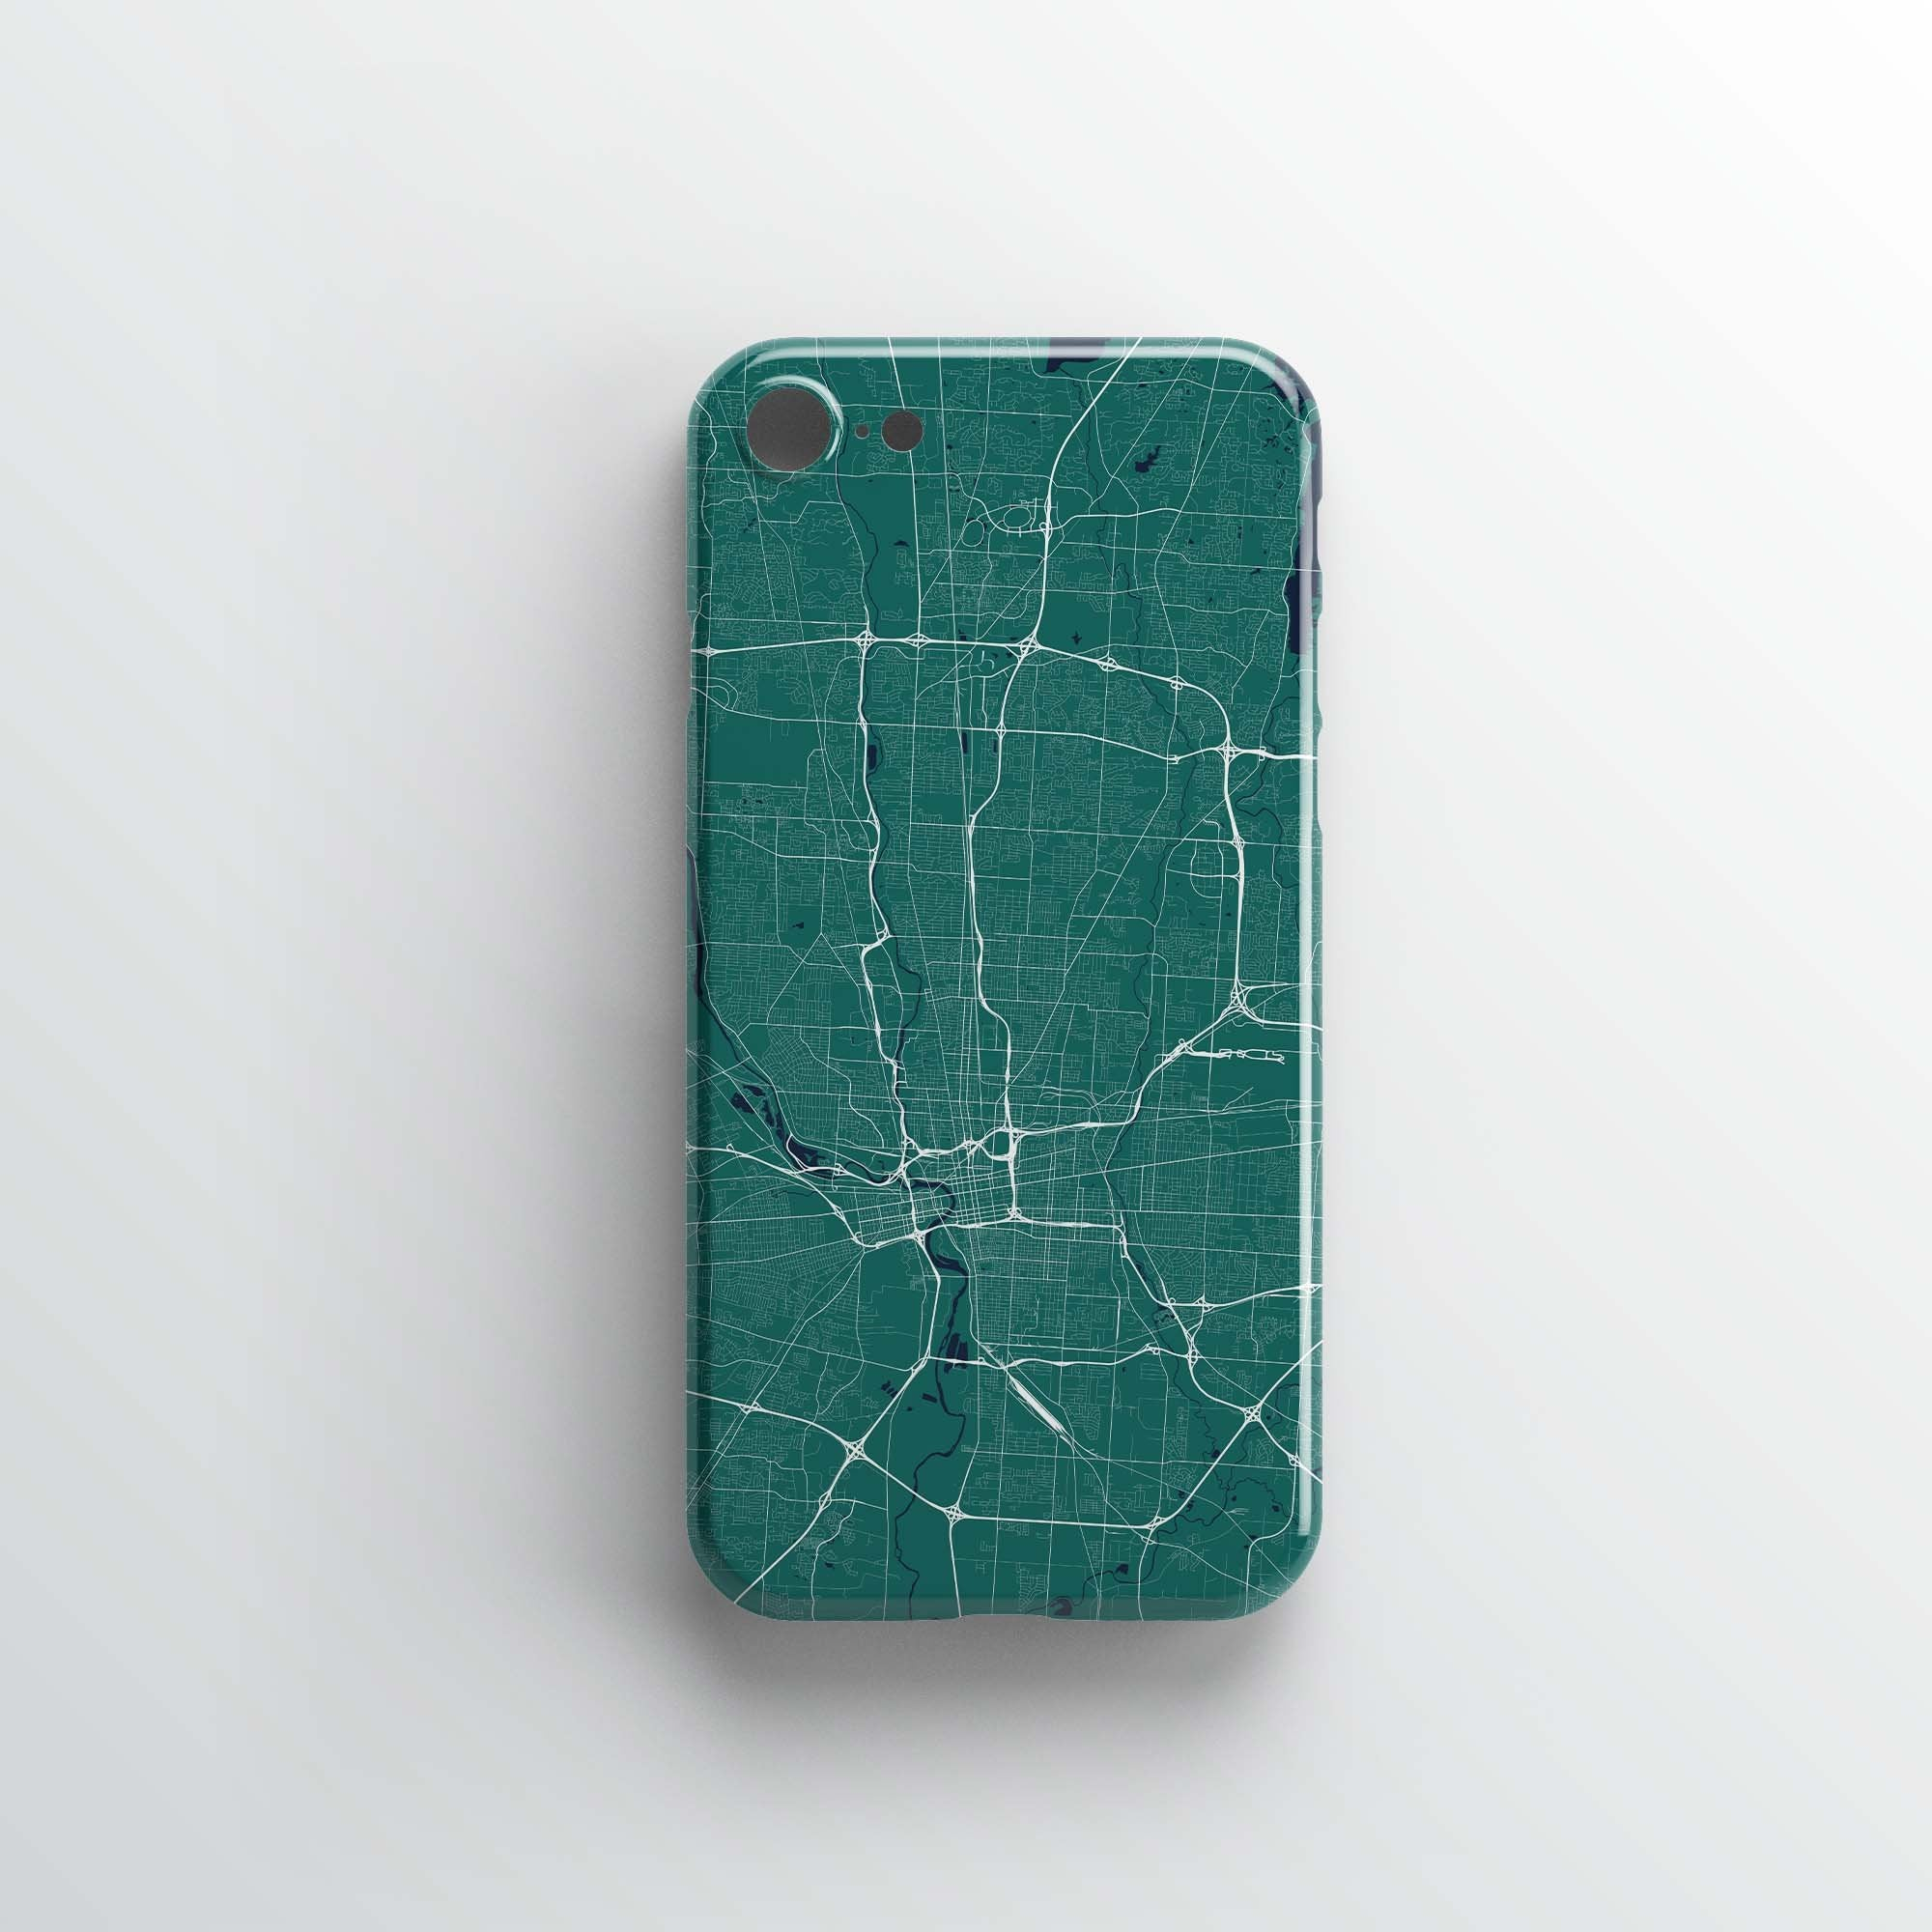 Columbus, OH City iPhone Case - Point Two Design